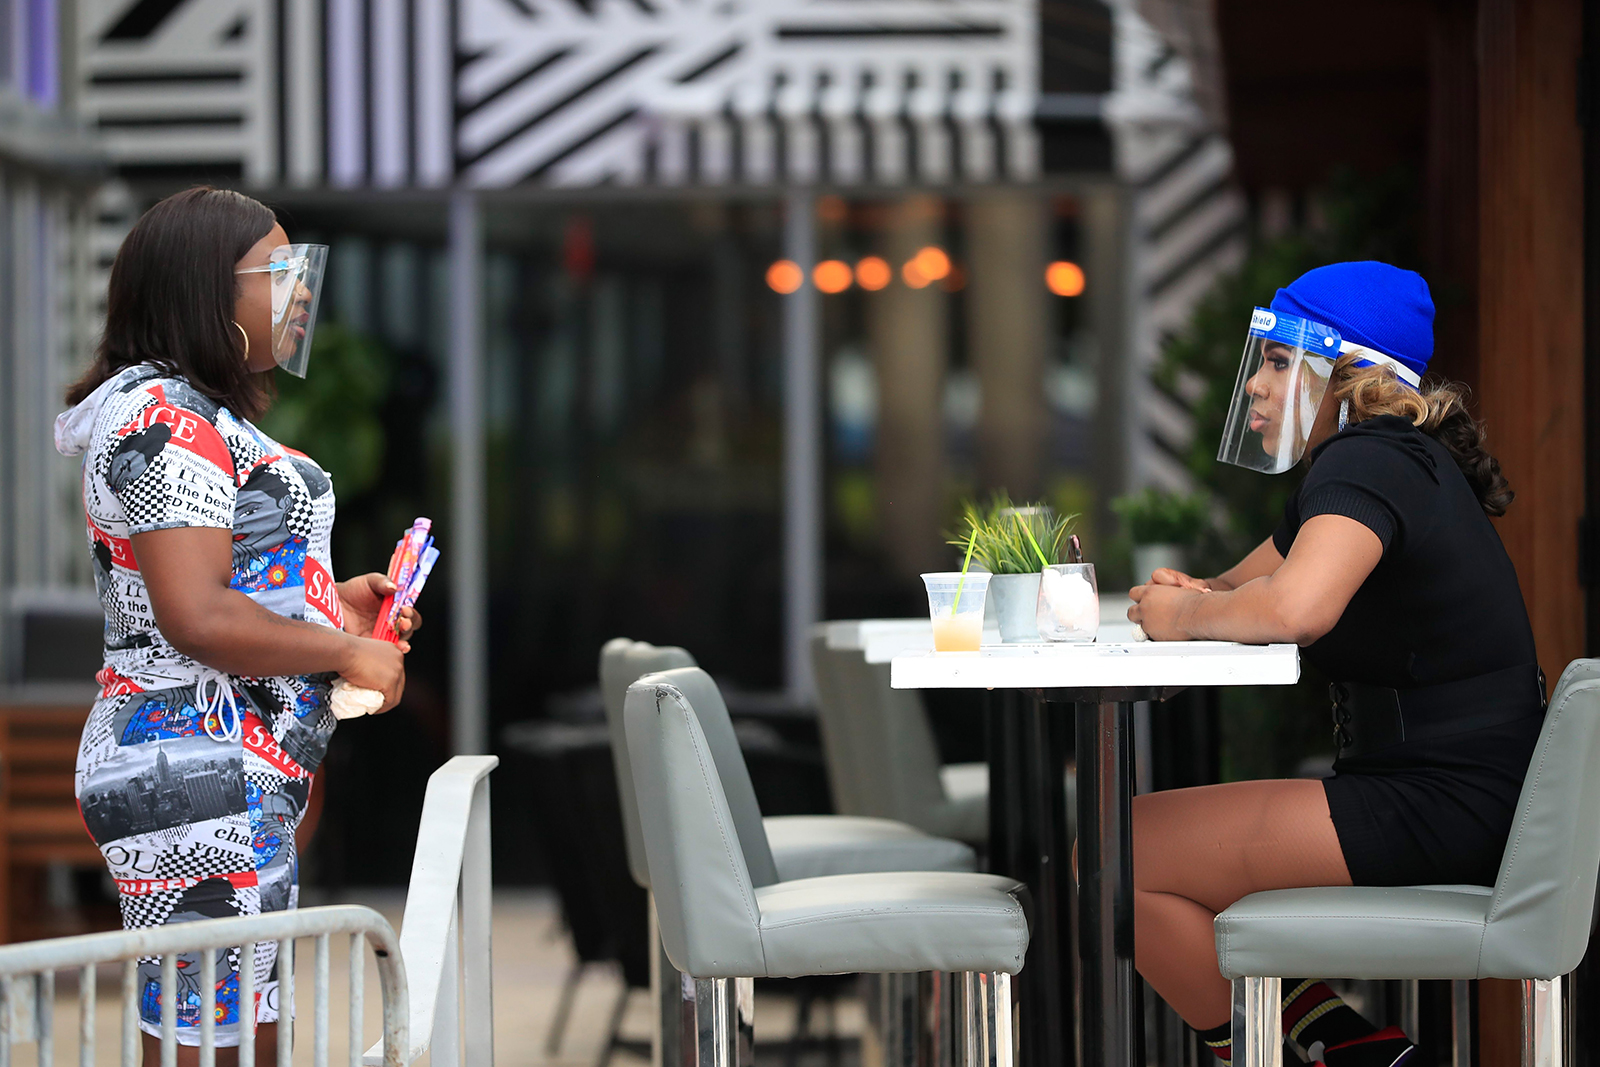 Two women wearing face masks speak at a table in The Palace restaurant on July 3, in Miami Beach, Florida.